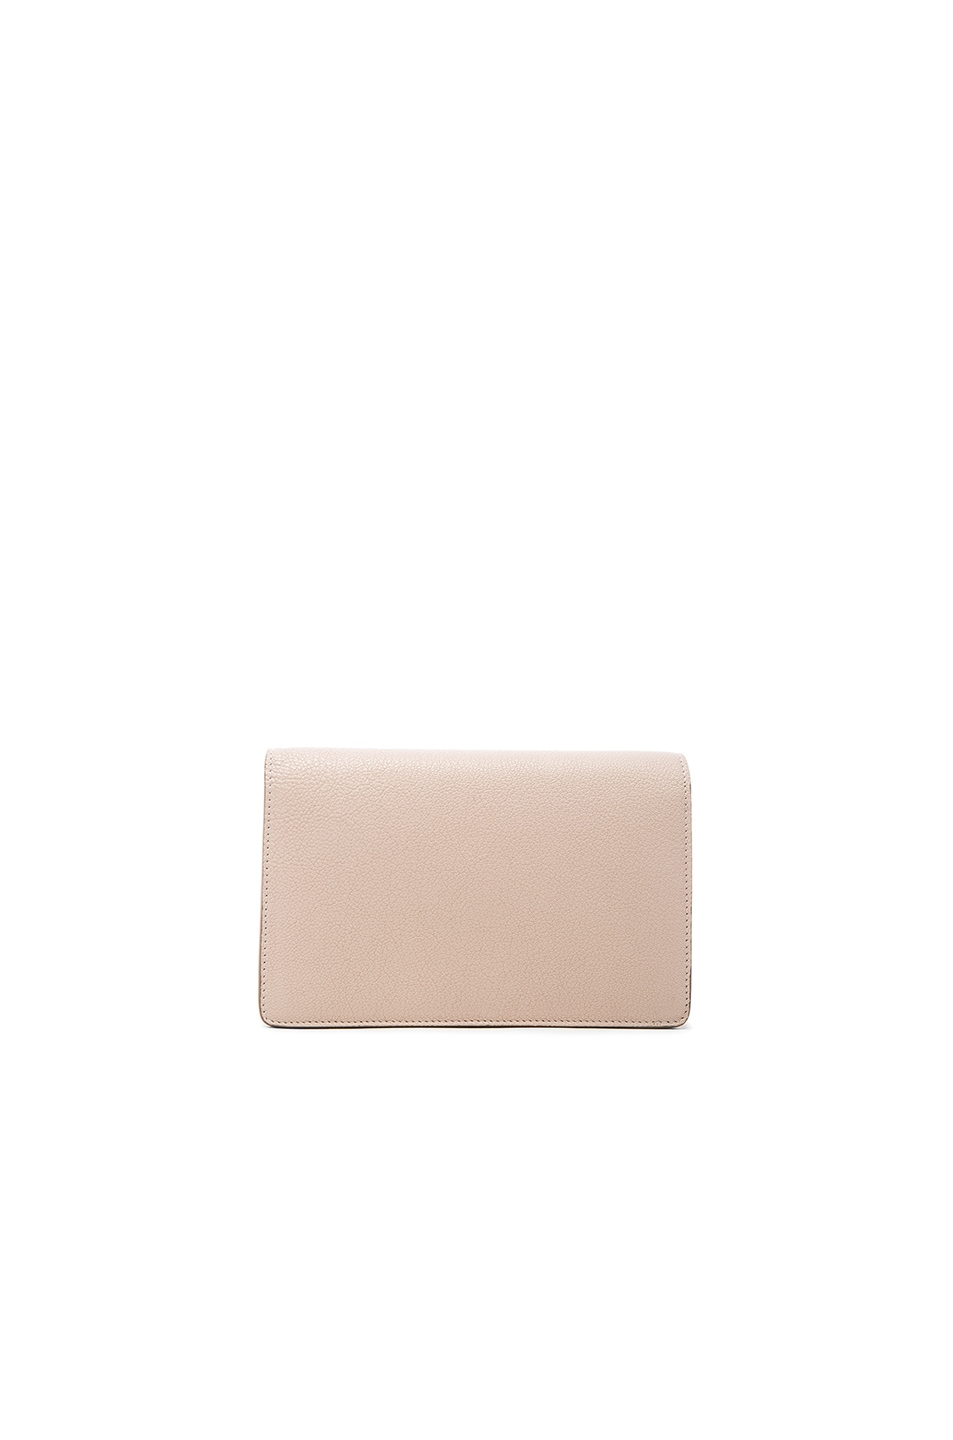 Image 3 of Givenchy Pandora Chain Wallet in Nude Pink